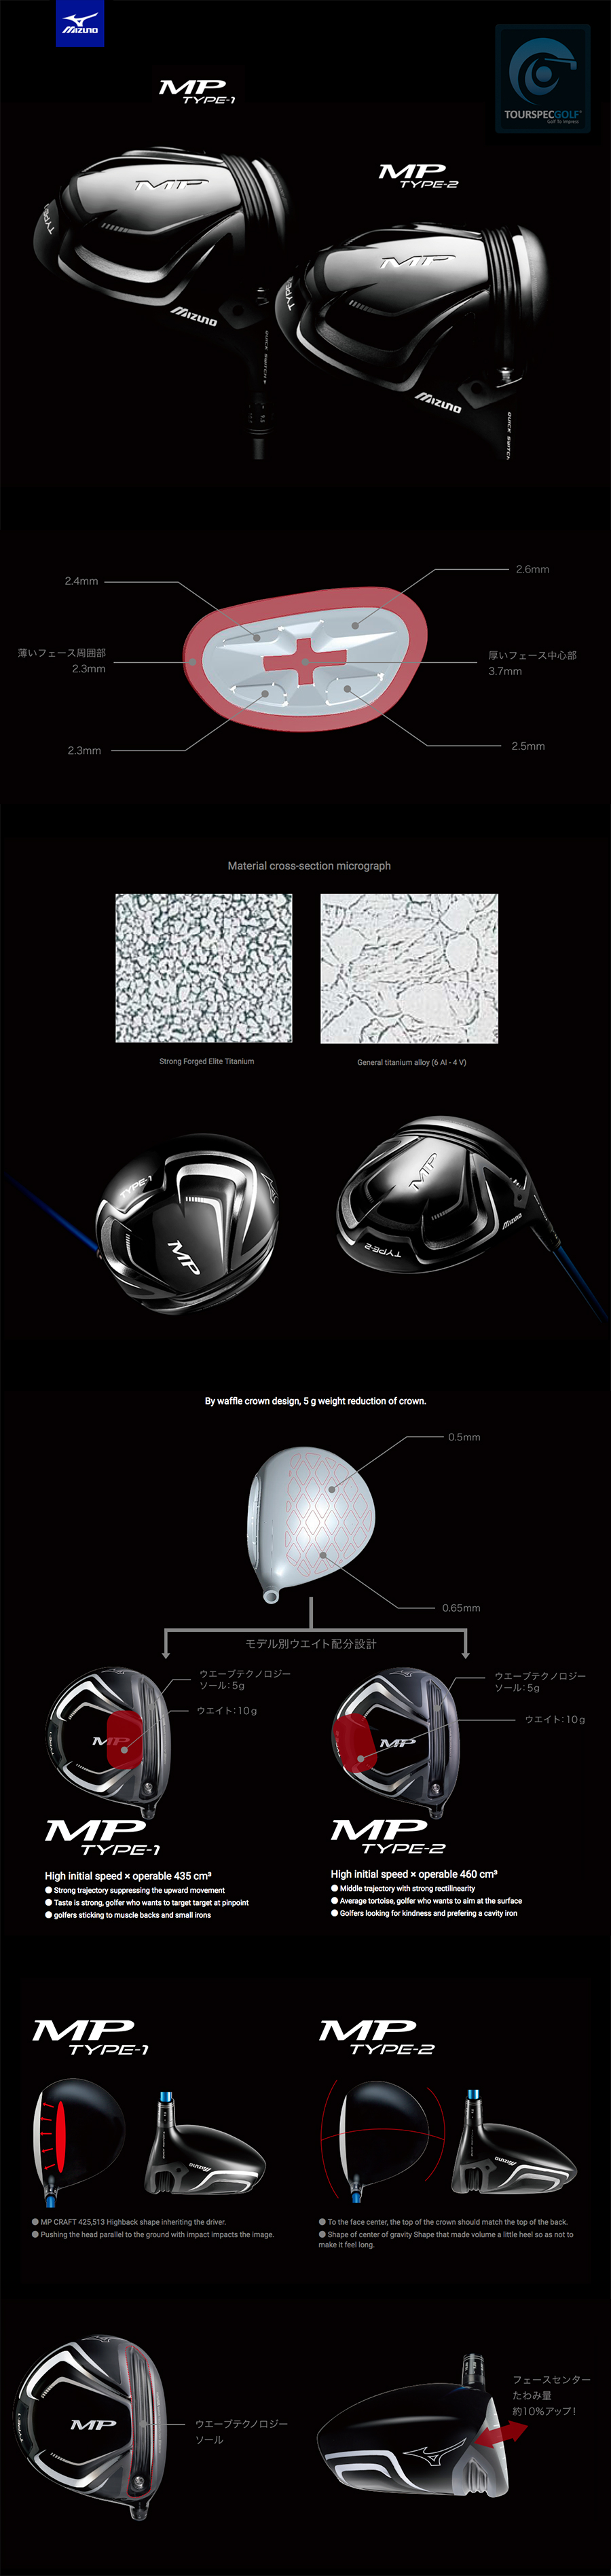 Mizuno-2017-MP-Type1-and-Type2-Drivers.j